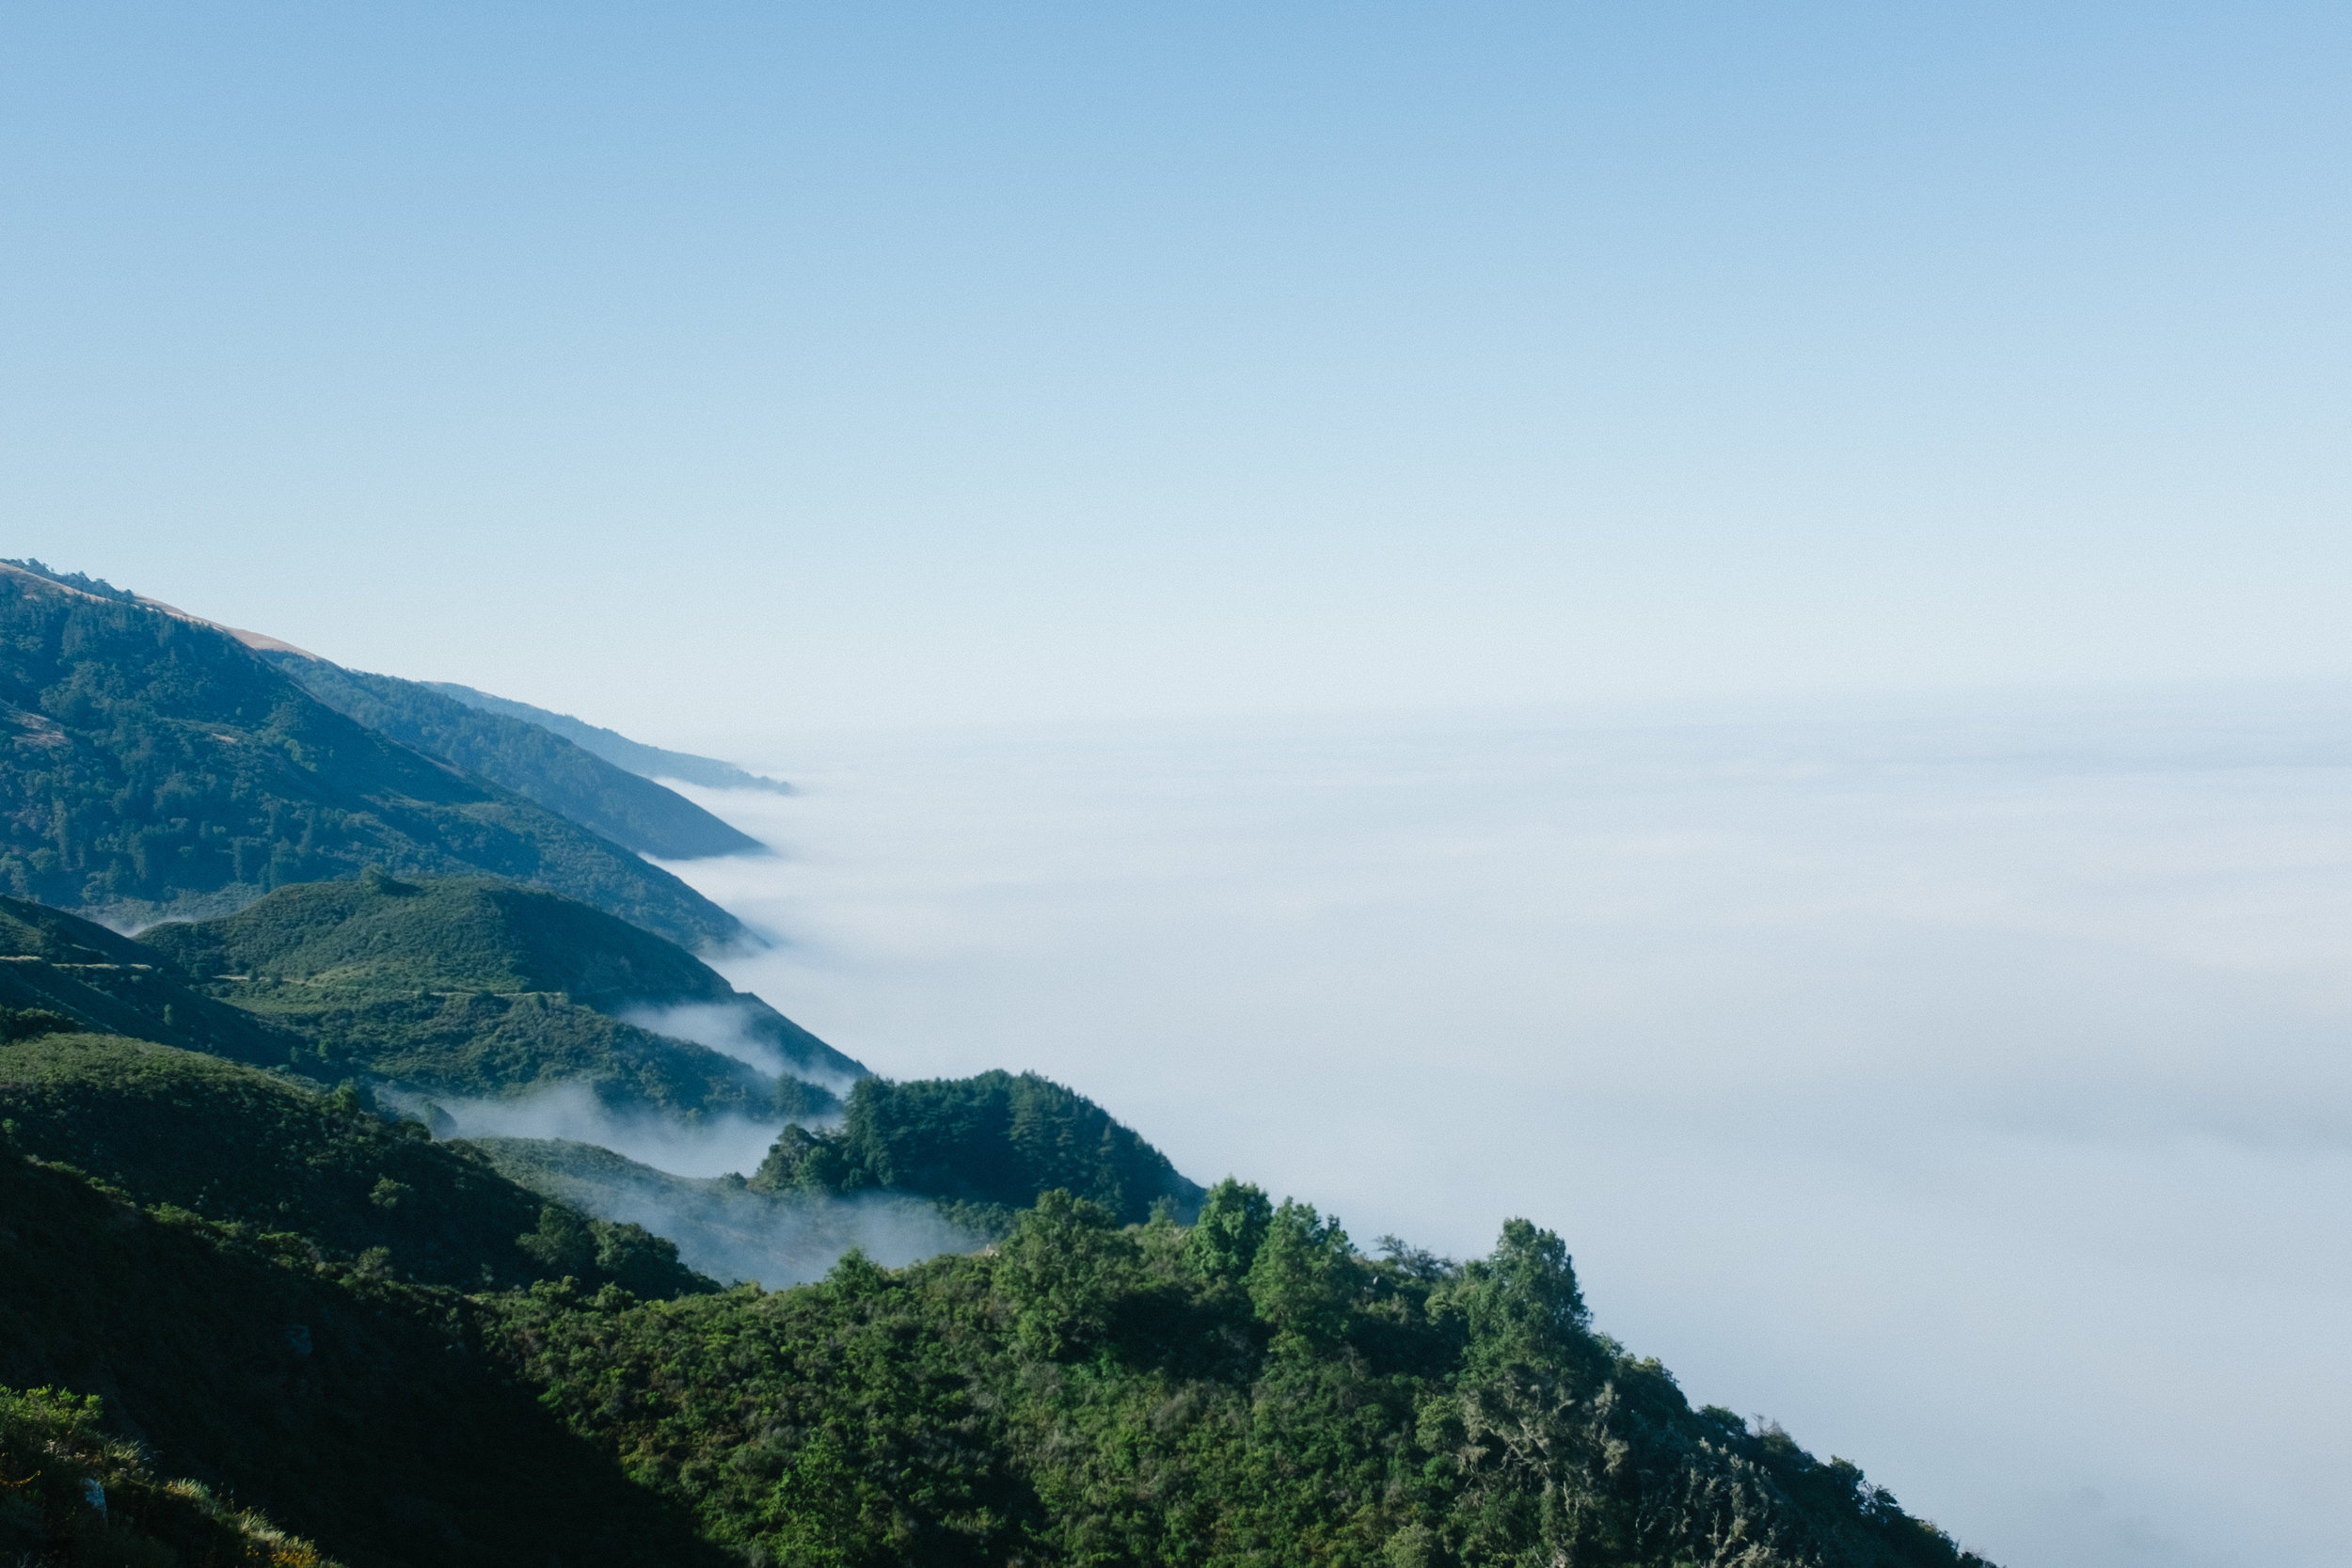 Overlooking the coast/marine layer. The fog lasted the first mile or so which was great - it's my favorite type of weather to hike in.